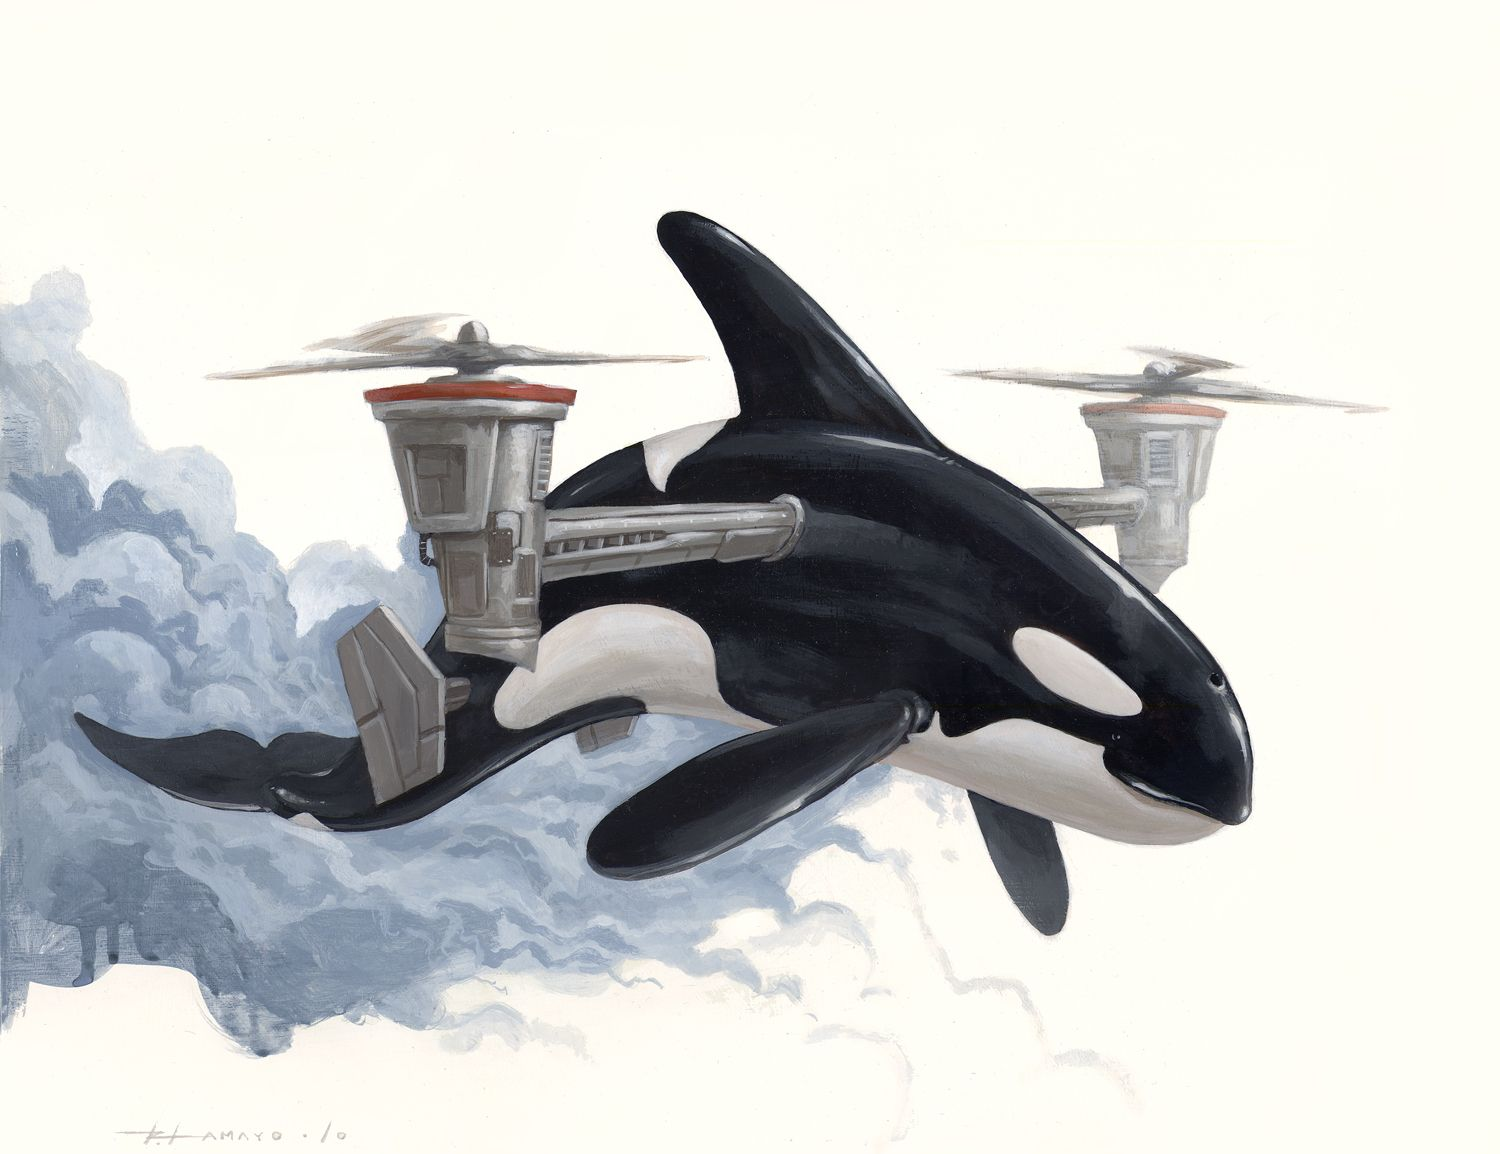 helicopter killer whale by roland tamayo killer whales i